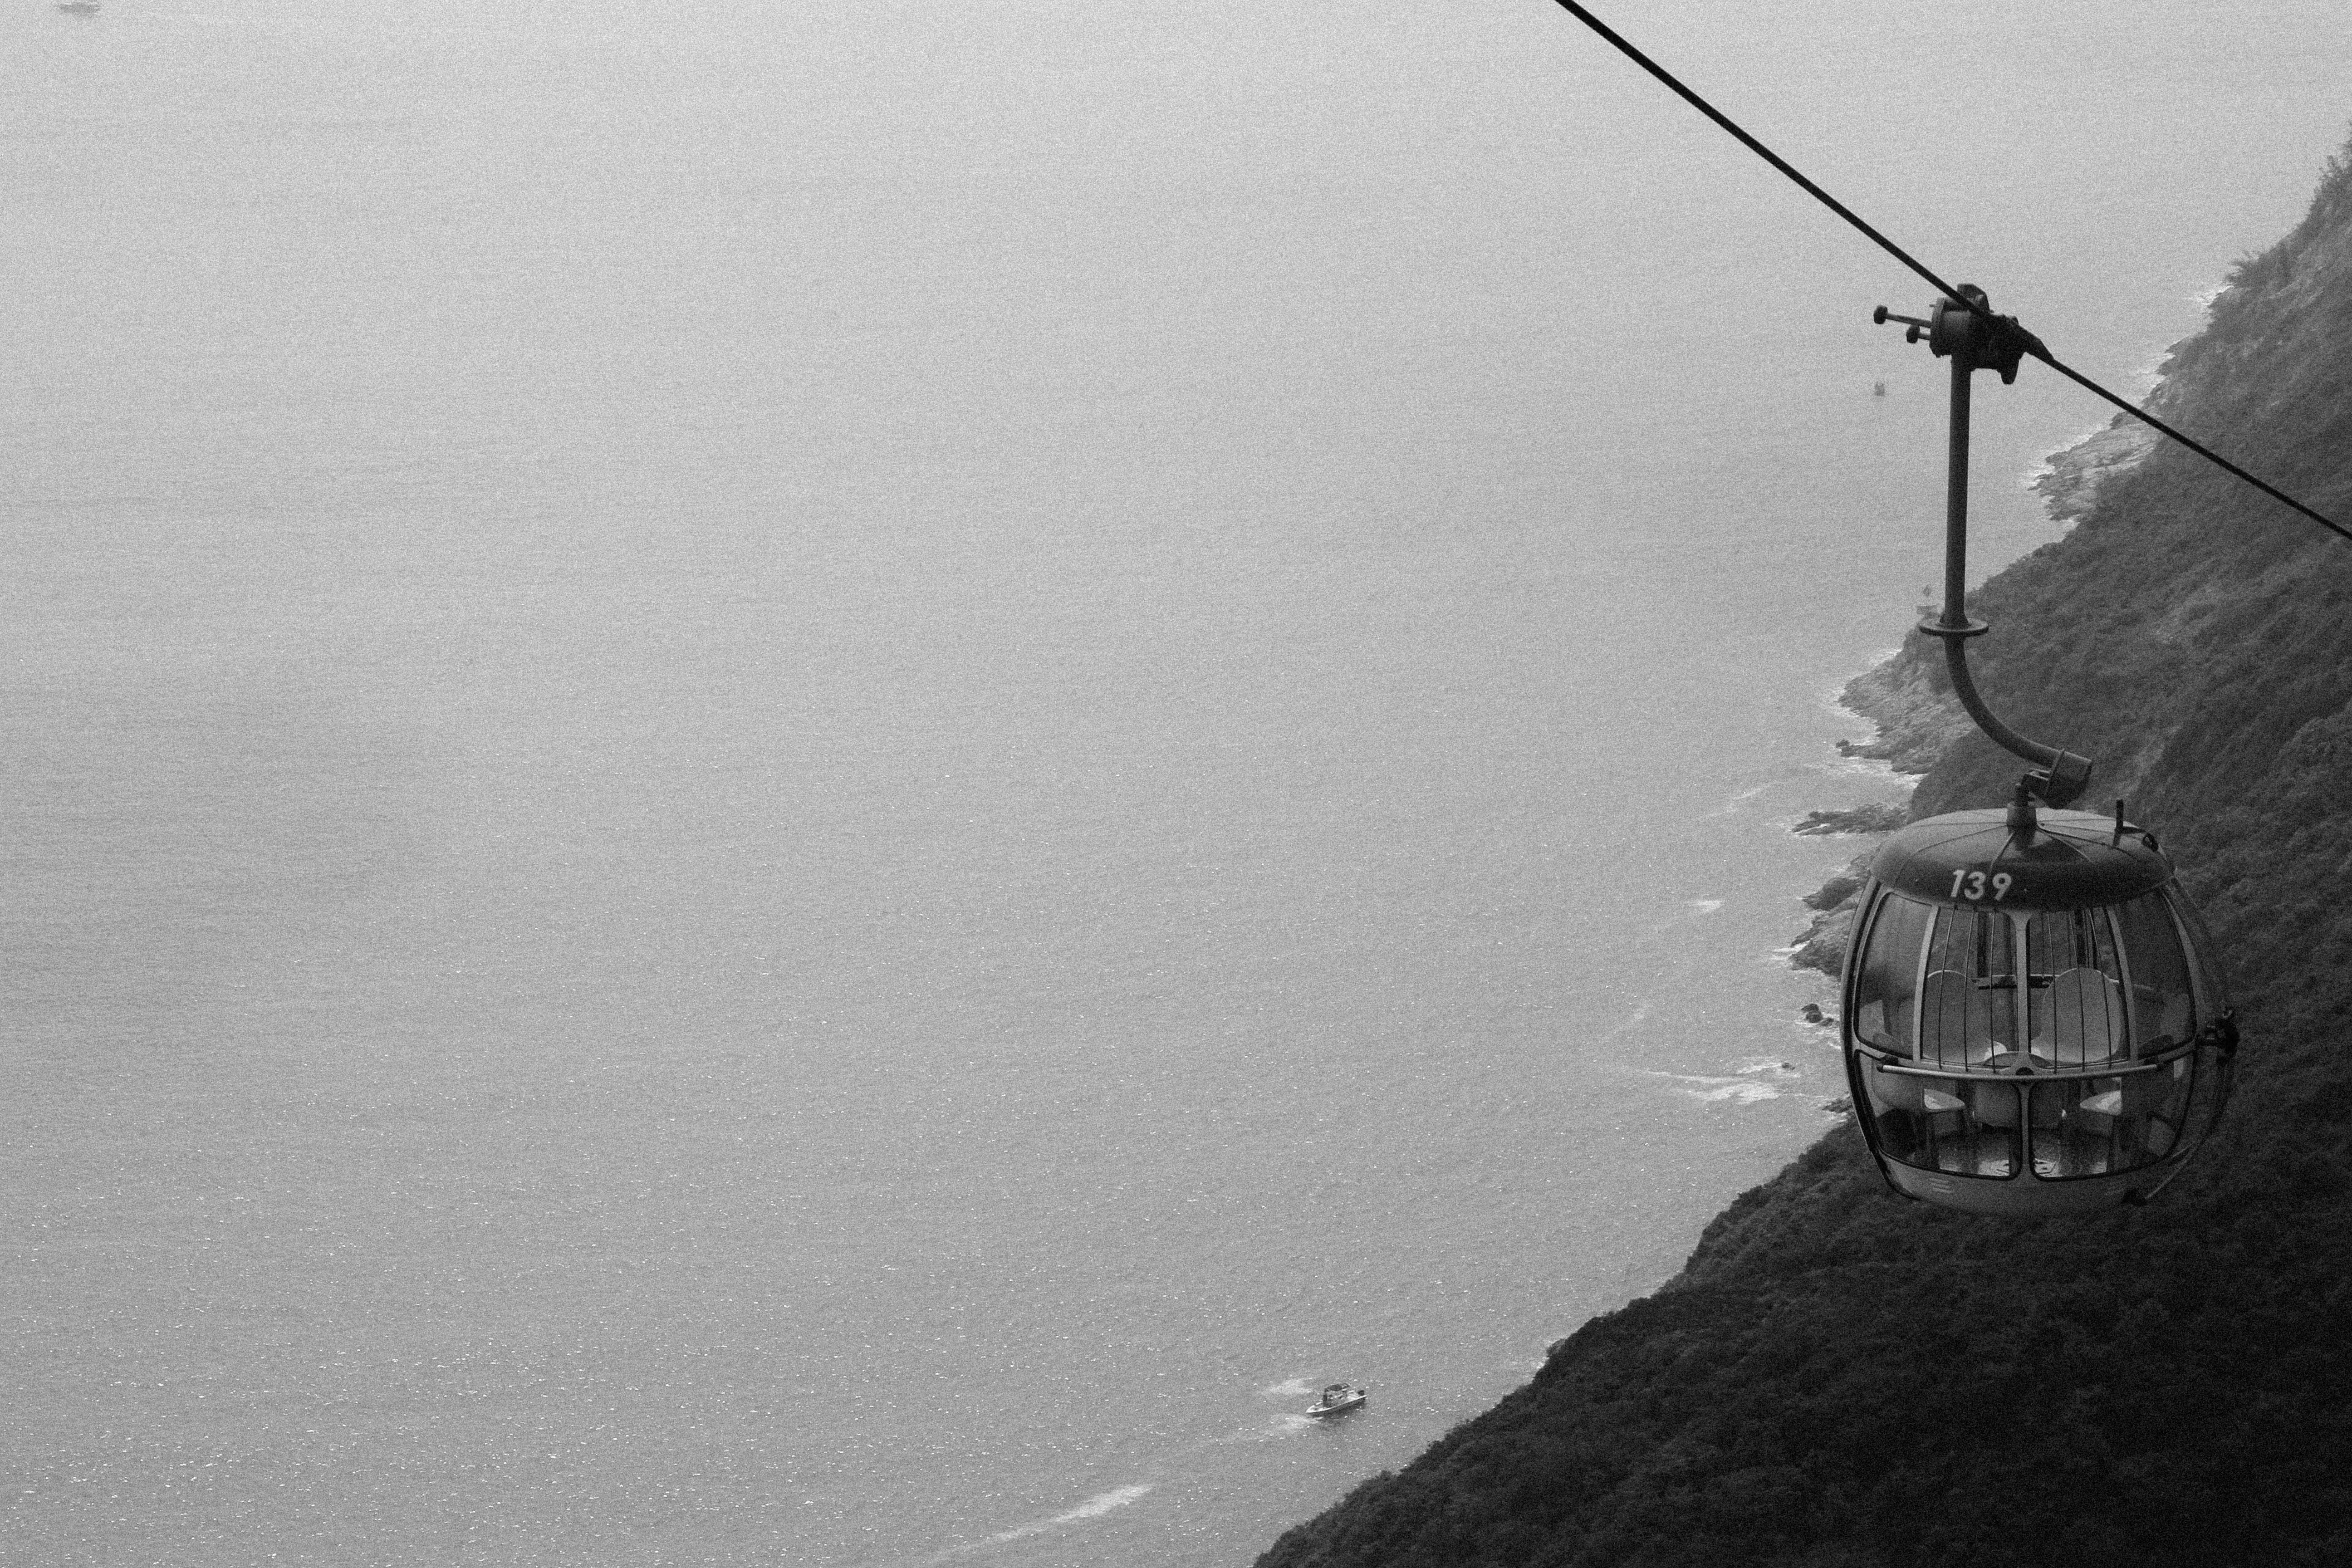 Height, Cable, Car, Chair, Flow, HQ Photo